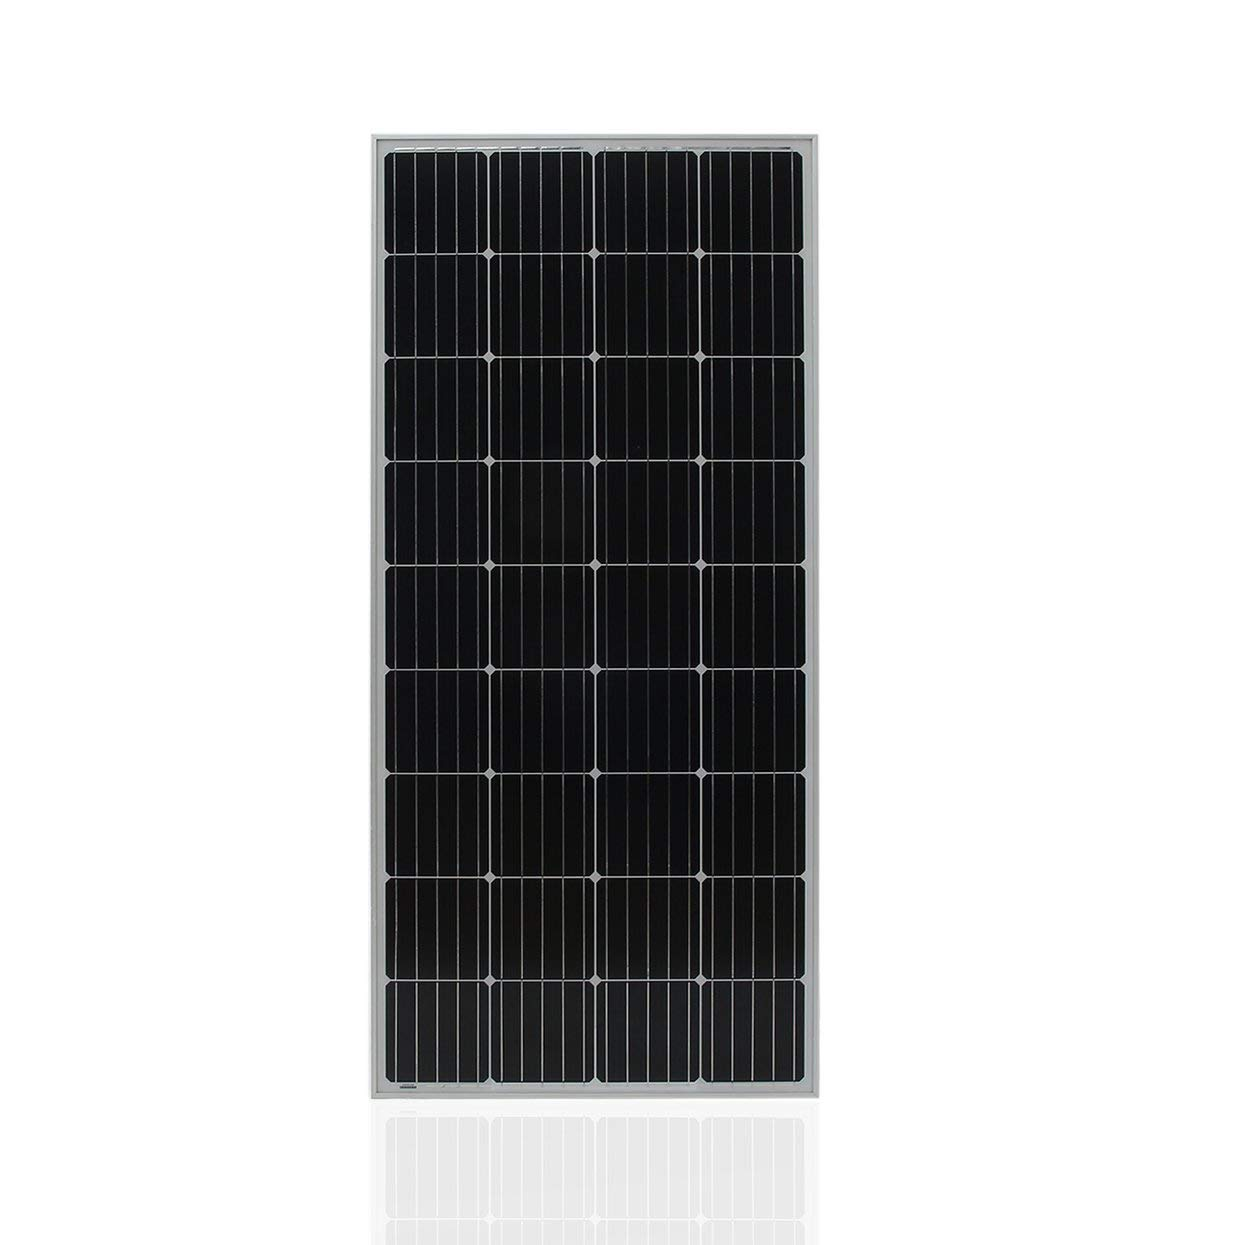 ToGames Universal Moncrystalline Solar Panel Module 170W Boat Solar Battery Charger Portable Car Solar Charging Device